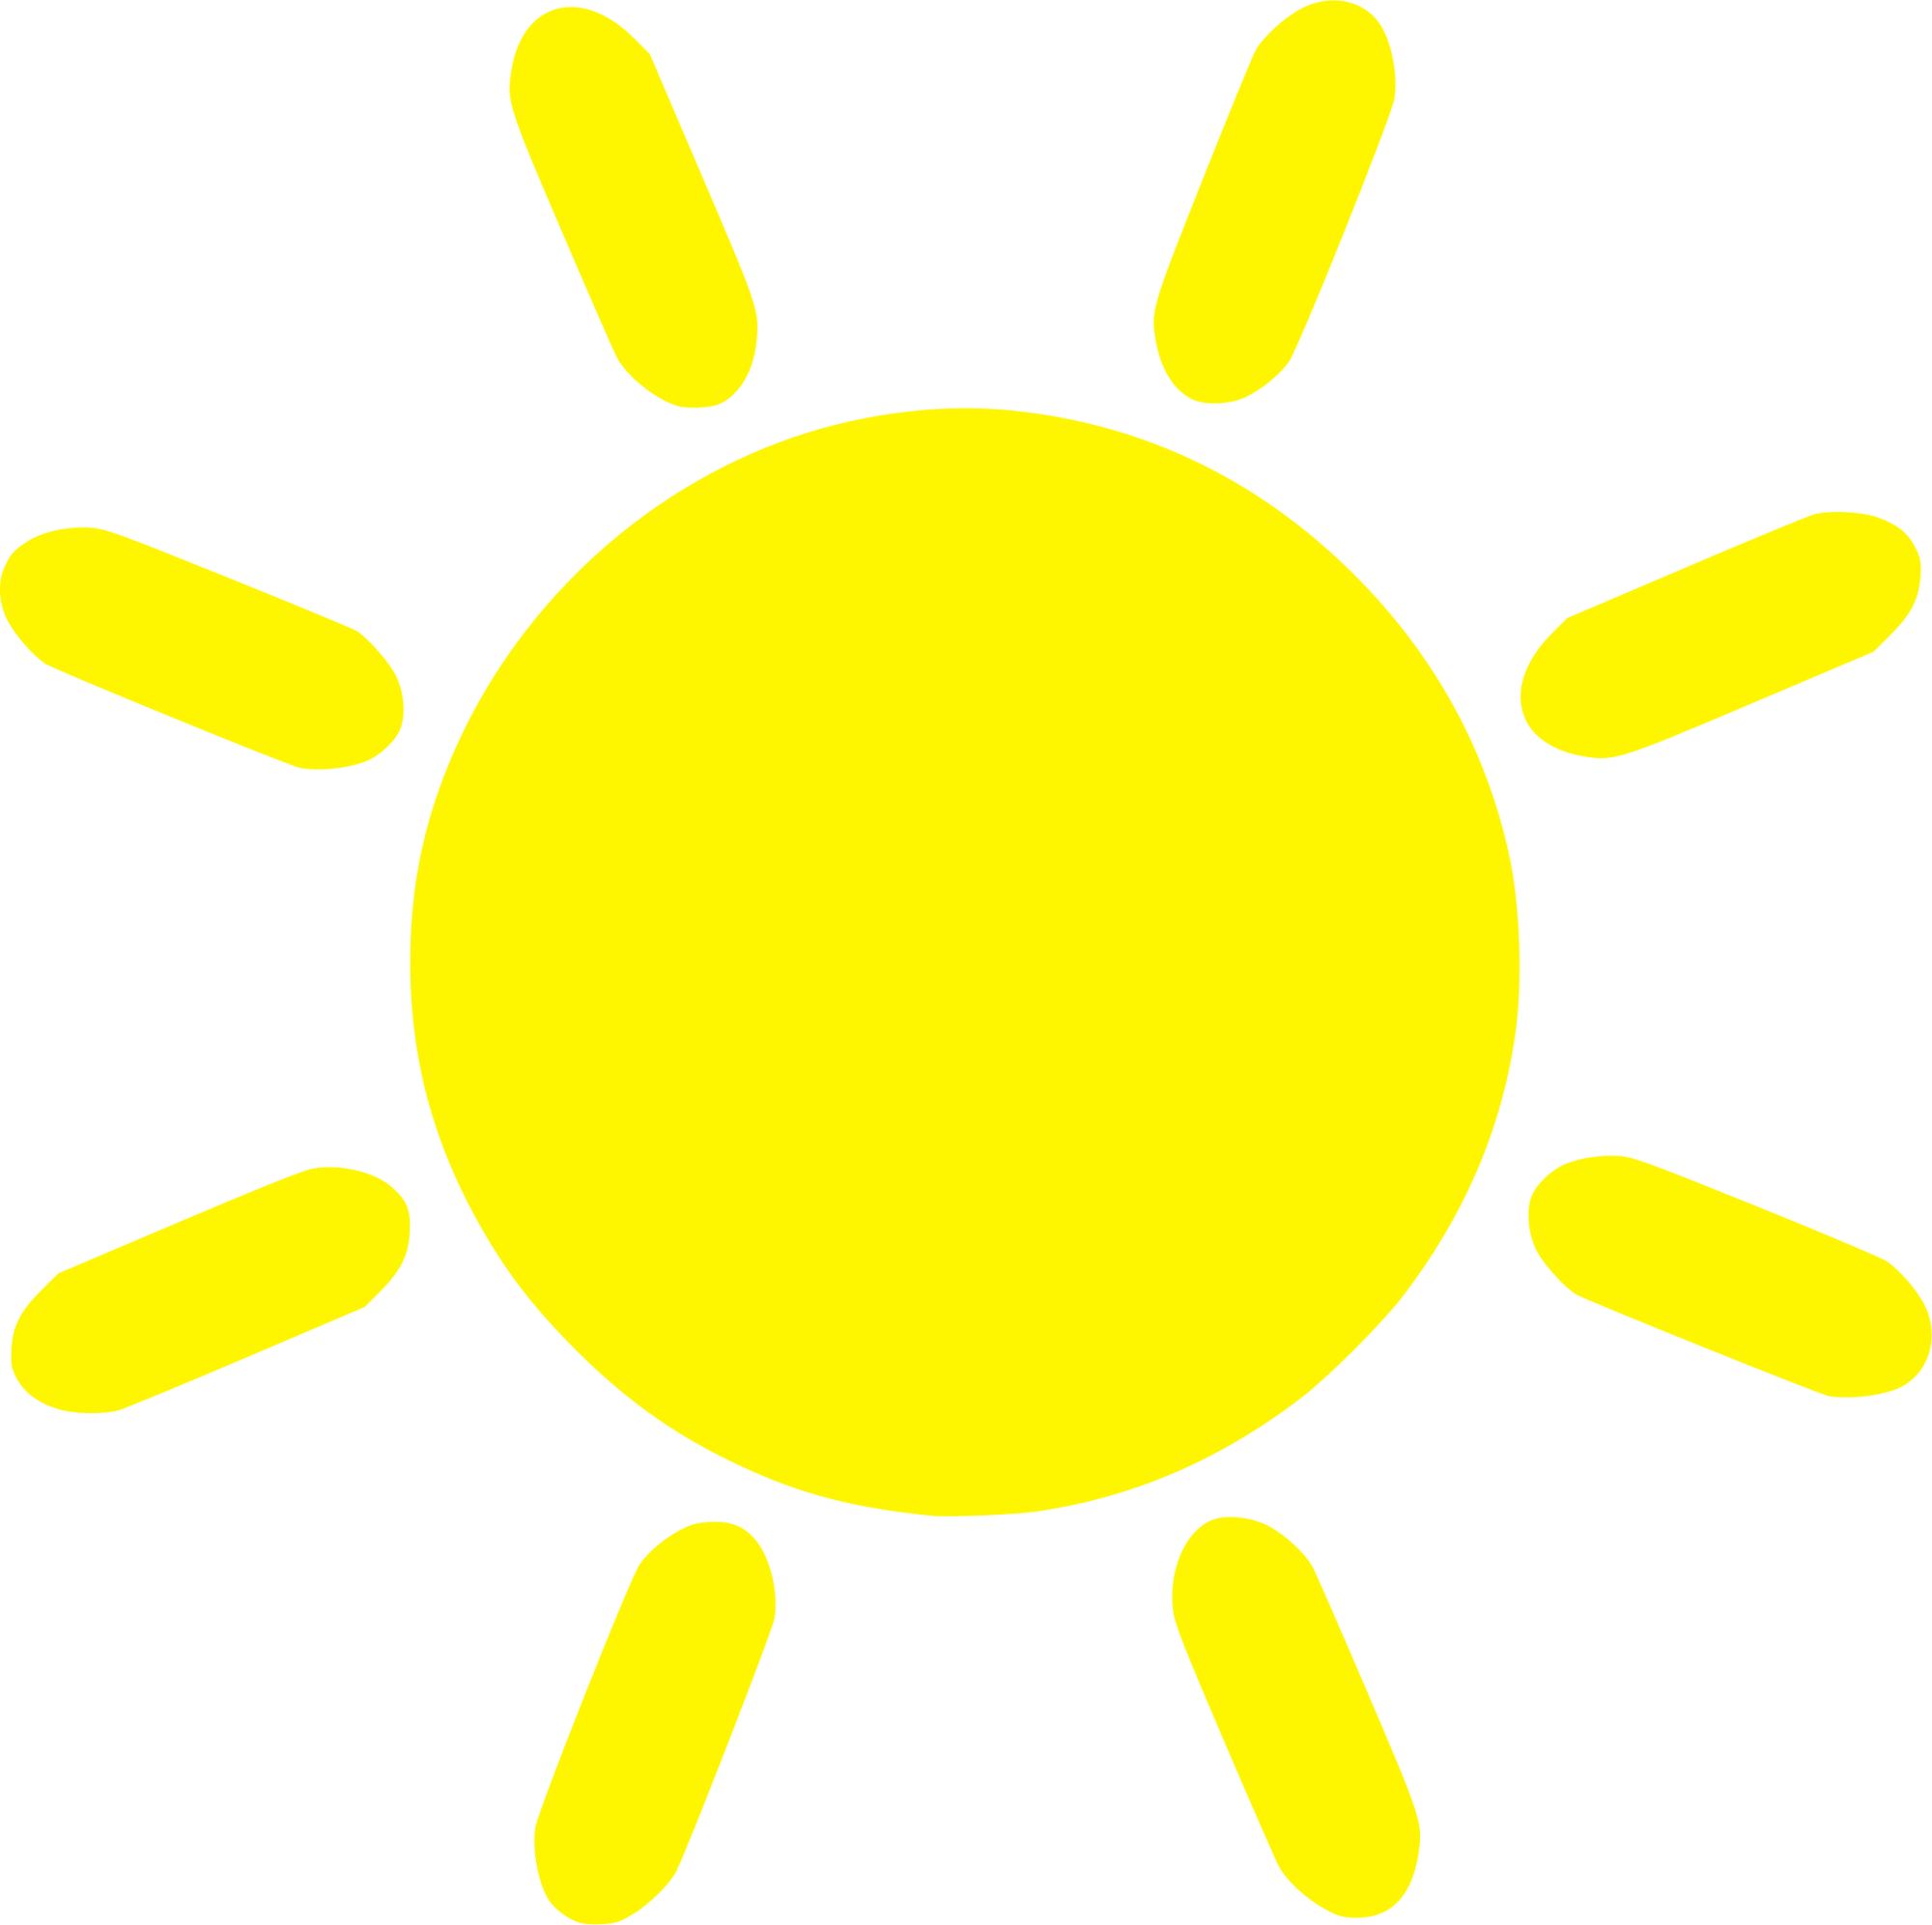 hight resolution of 2400x2392 sunshine free sun clipart public domain clip art images and 3